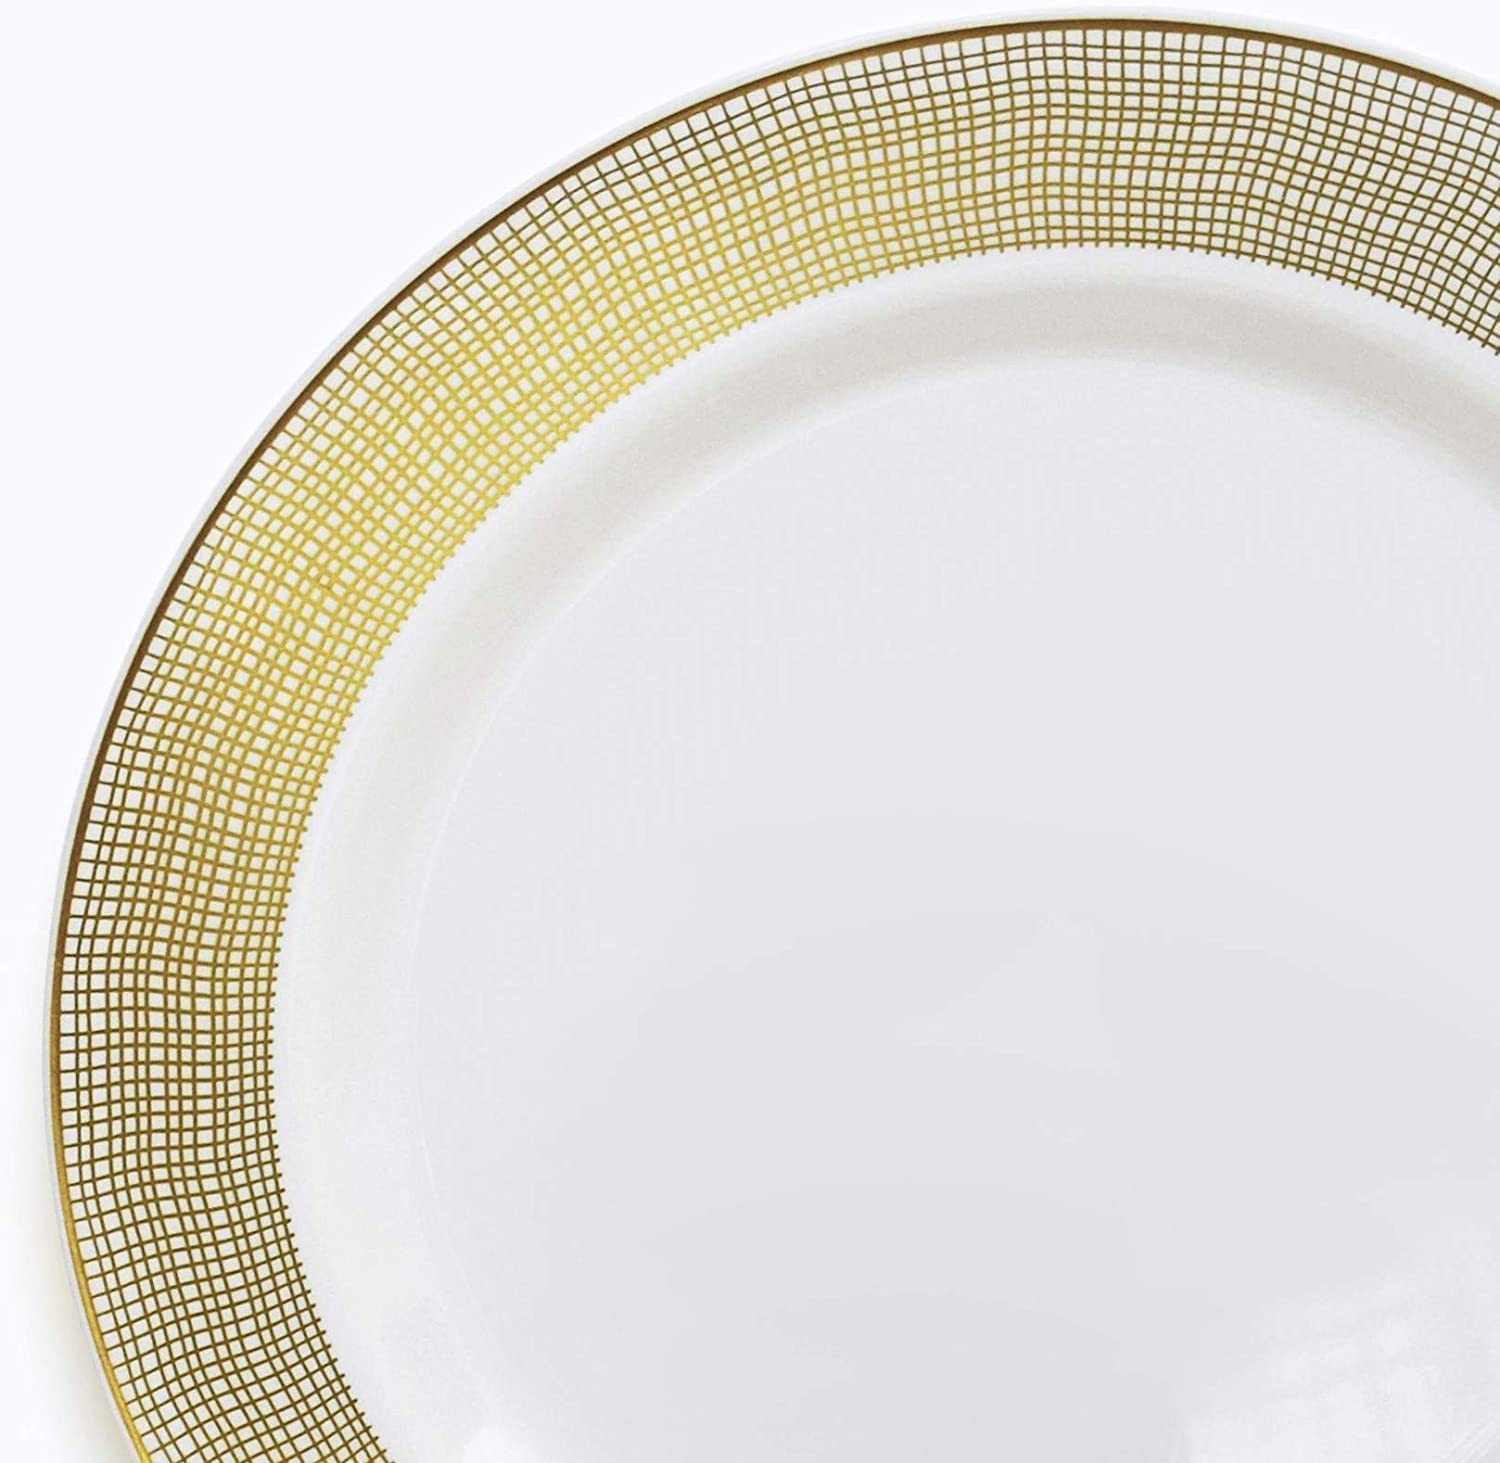 Celebration White /& Gold OCCASIONS  40 pcs Chargers pack Wedding Party 12 Disposable Plastic Charger Plates//Chargers